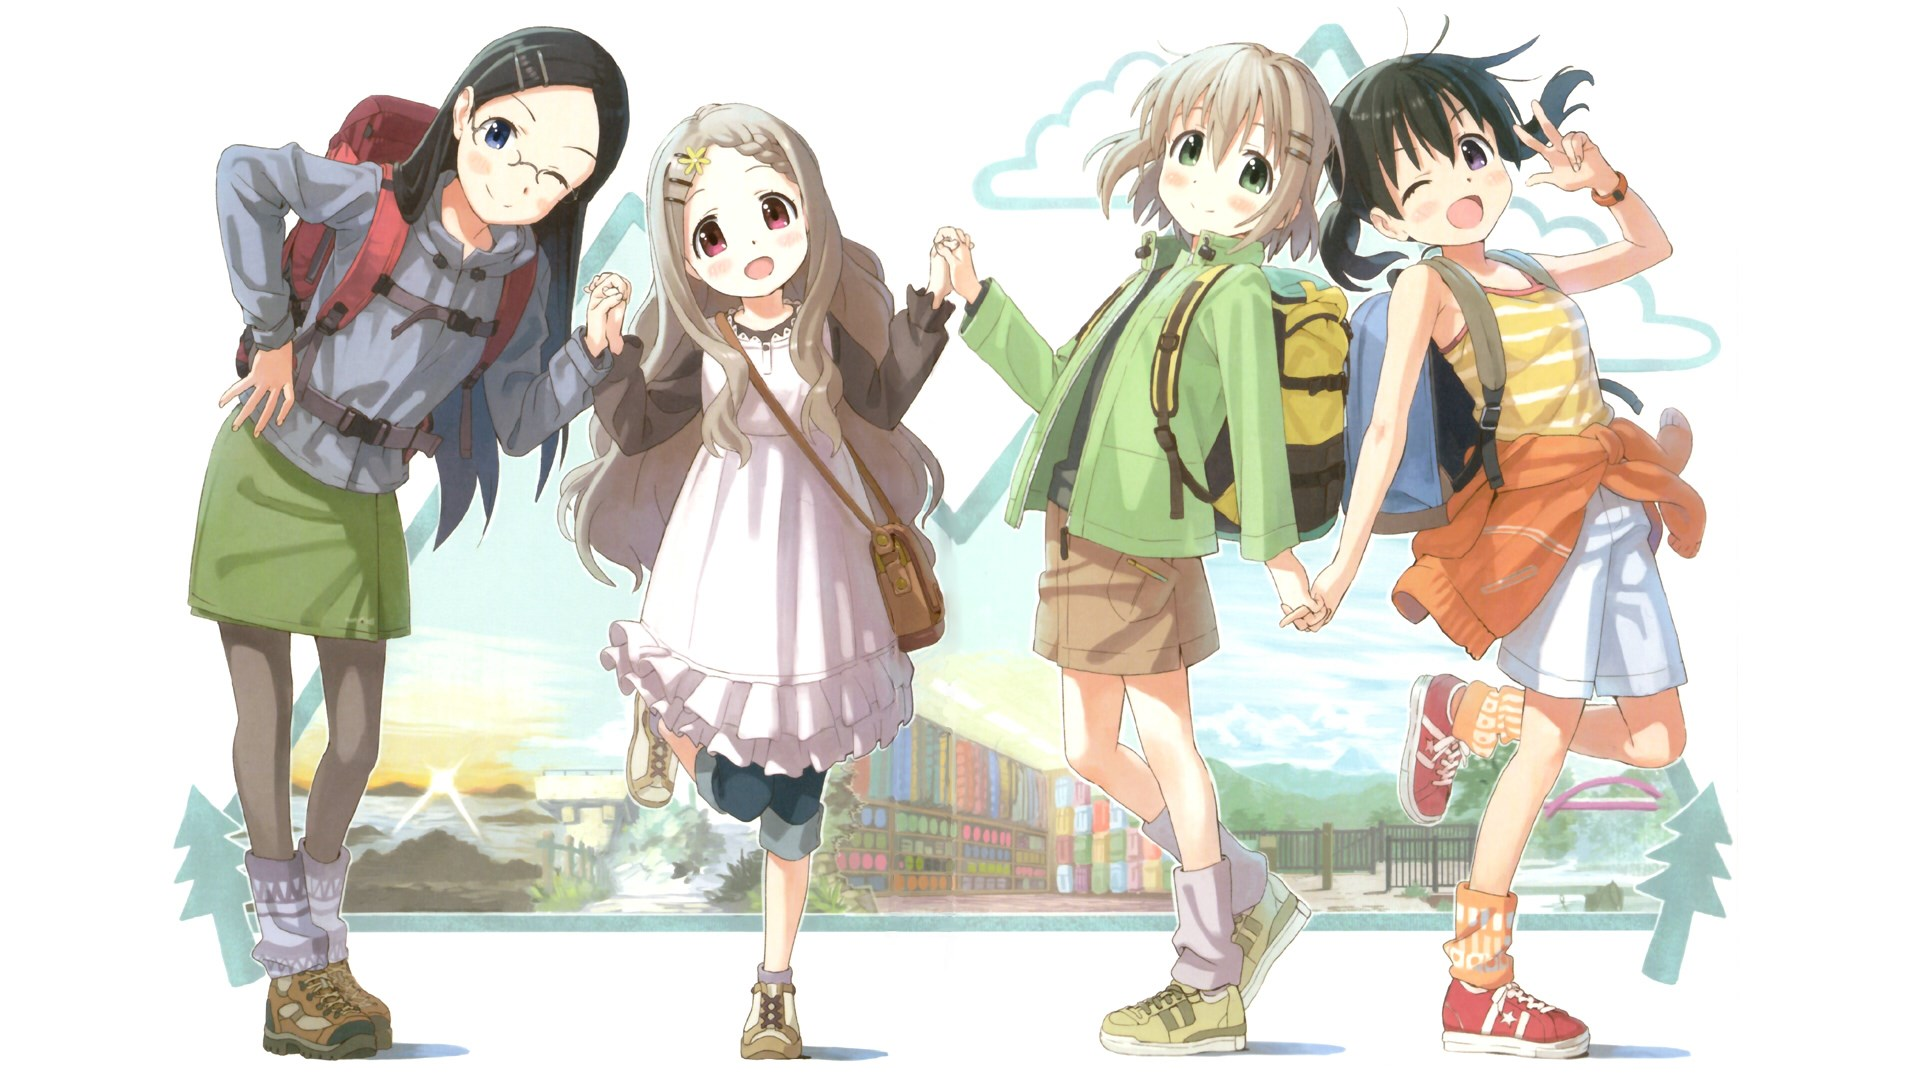 1920x1080-free-and-screensavers-for-yama-no-susume-wallpaper-wp380825